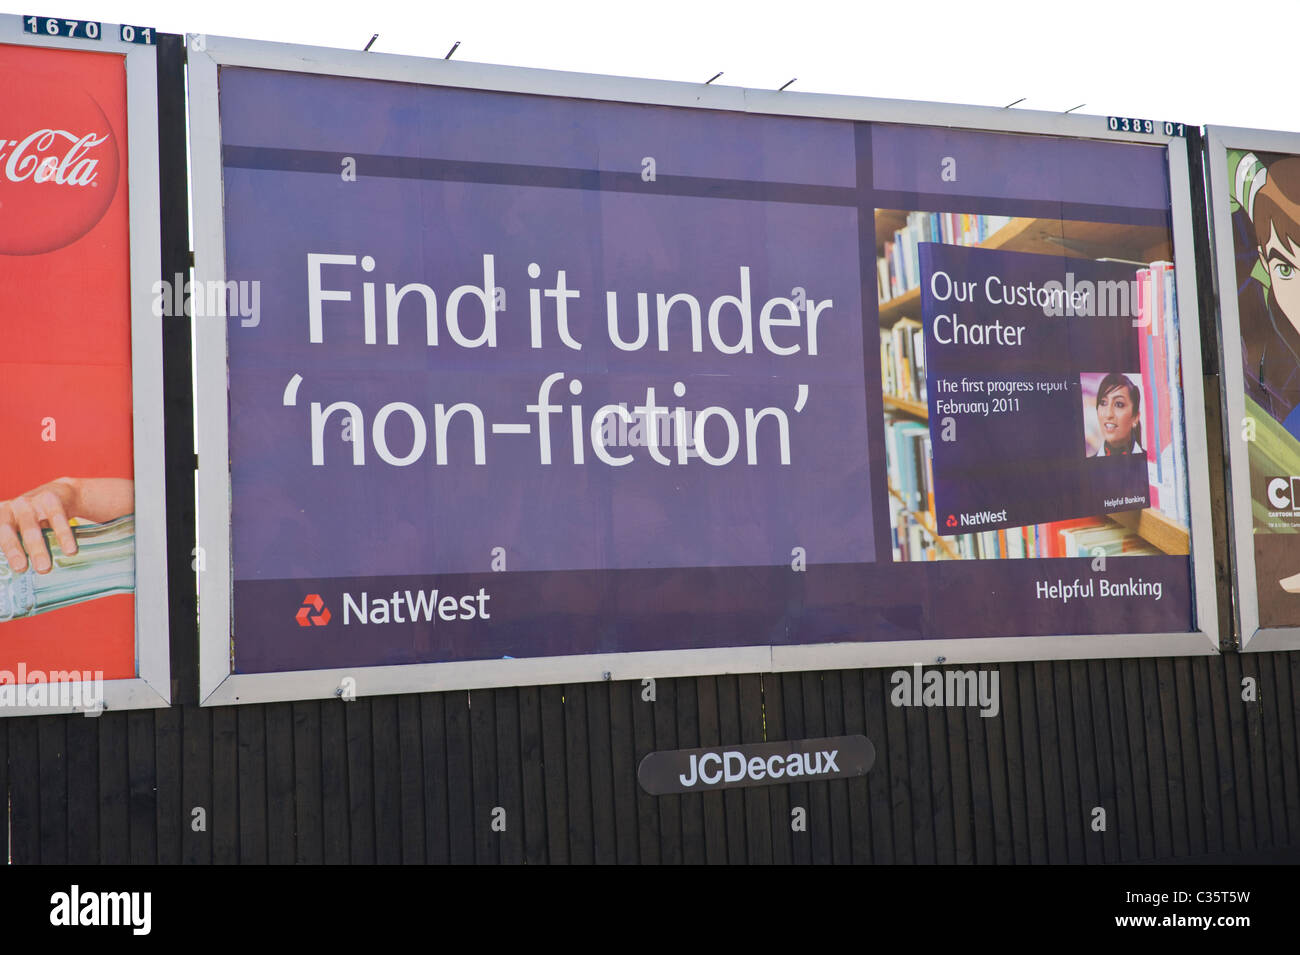 Advertising billboard on JCDECAUX roadside site advert for NATWEST BANK - Stock Image